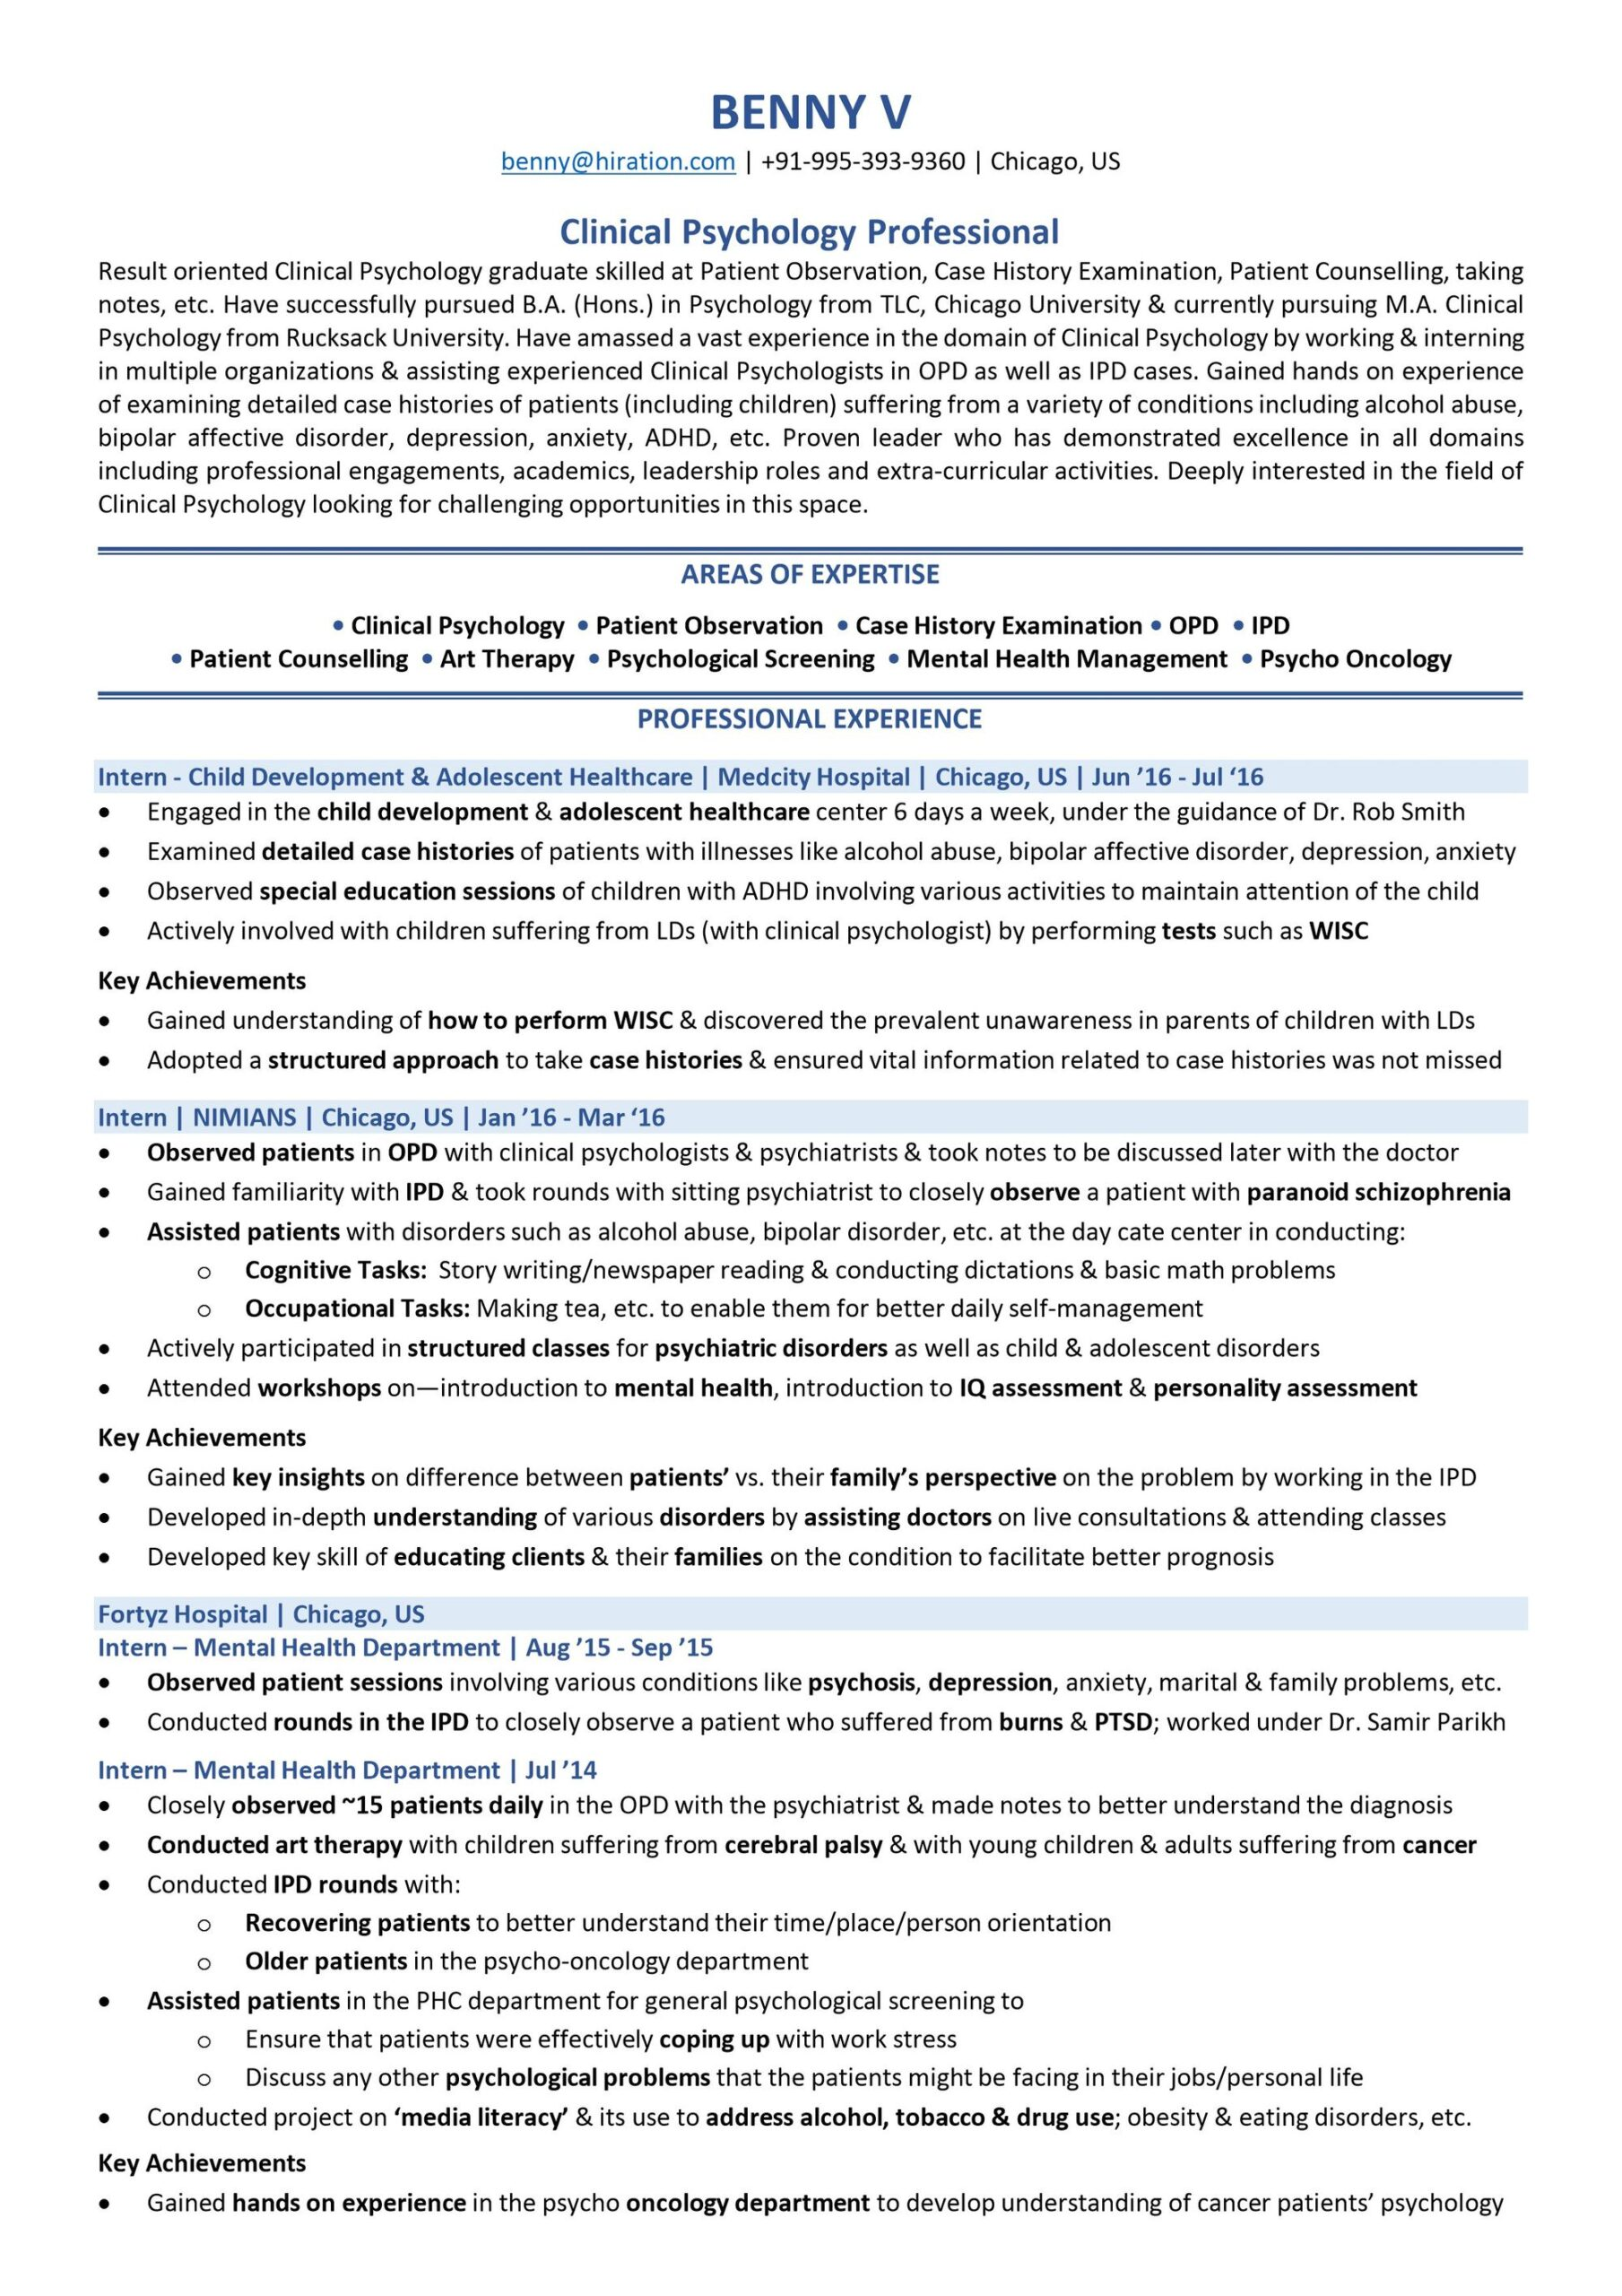 scholarship resume guide with examples samples objective template cosmetology instructor Resume Scholarship Resume Objective